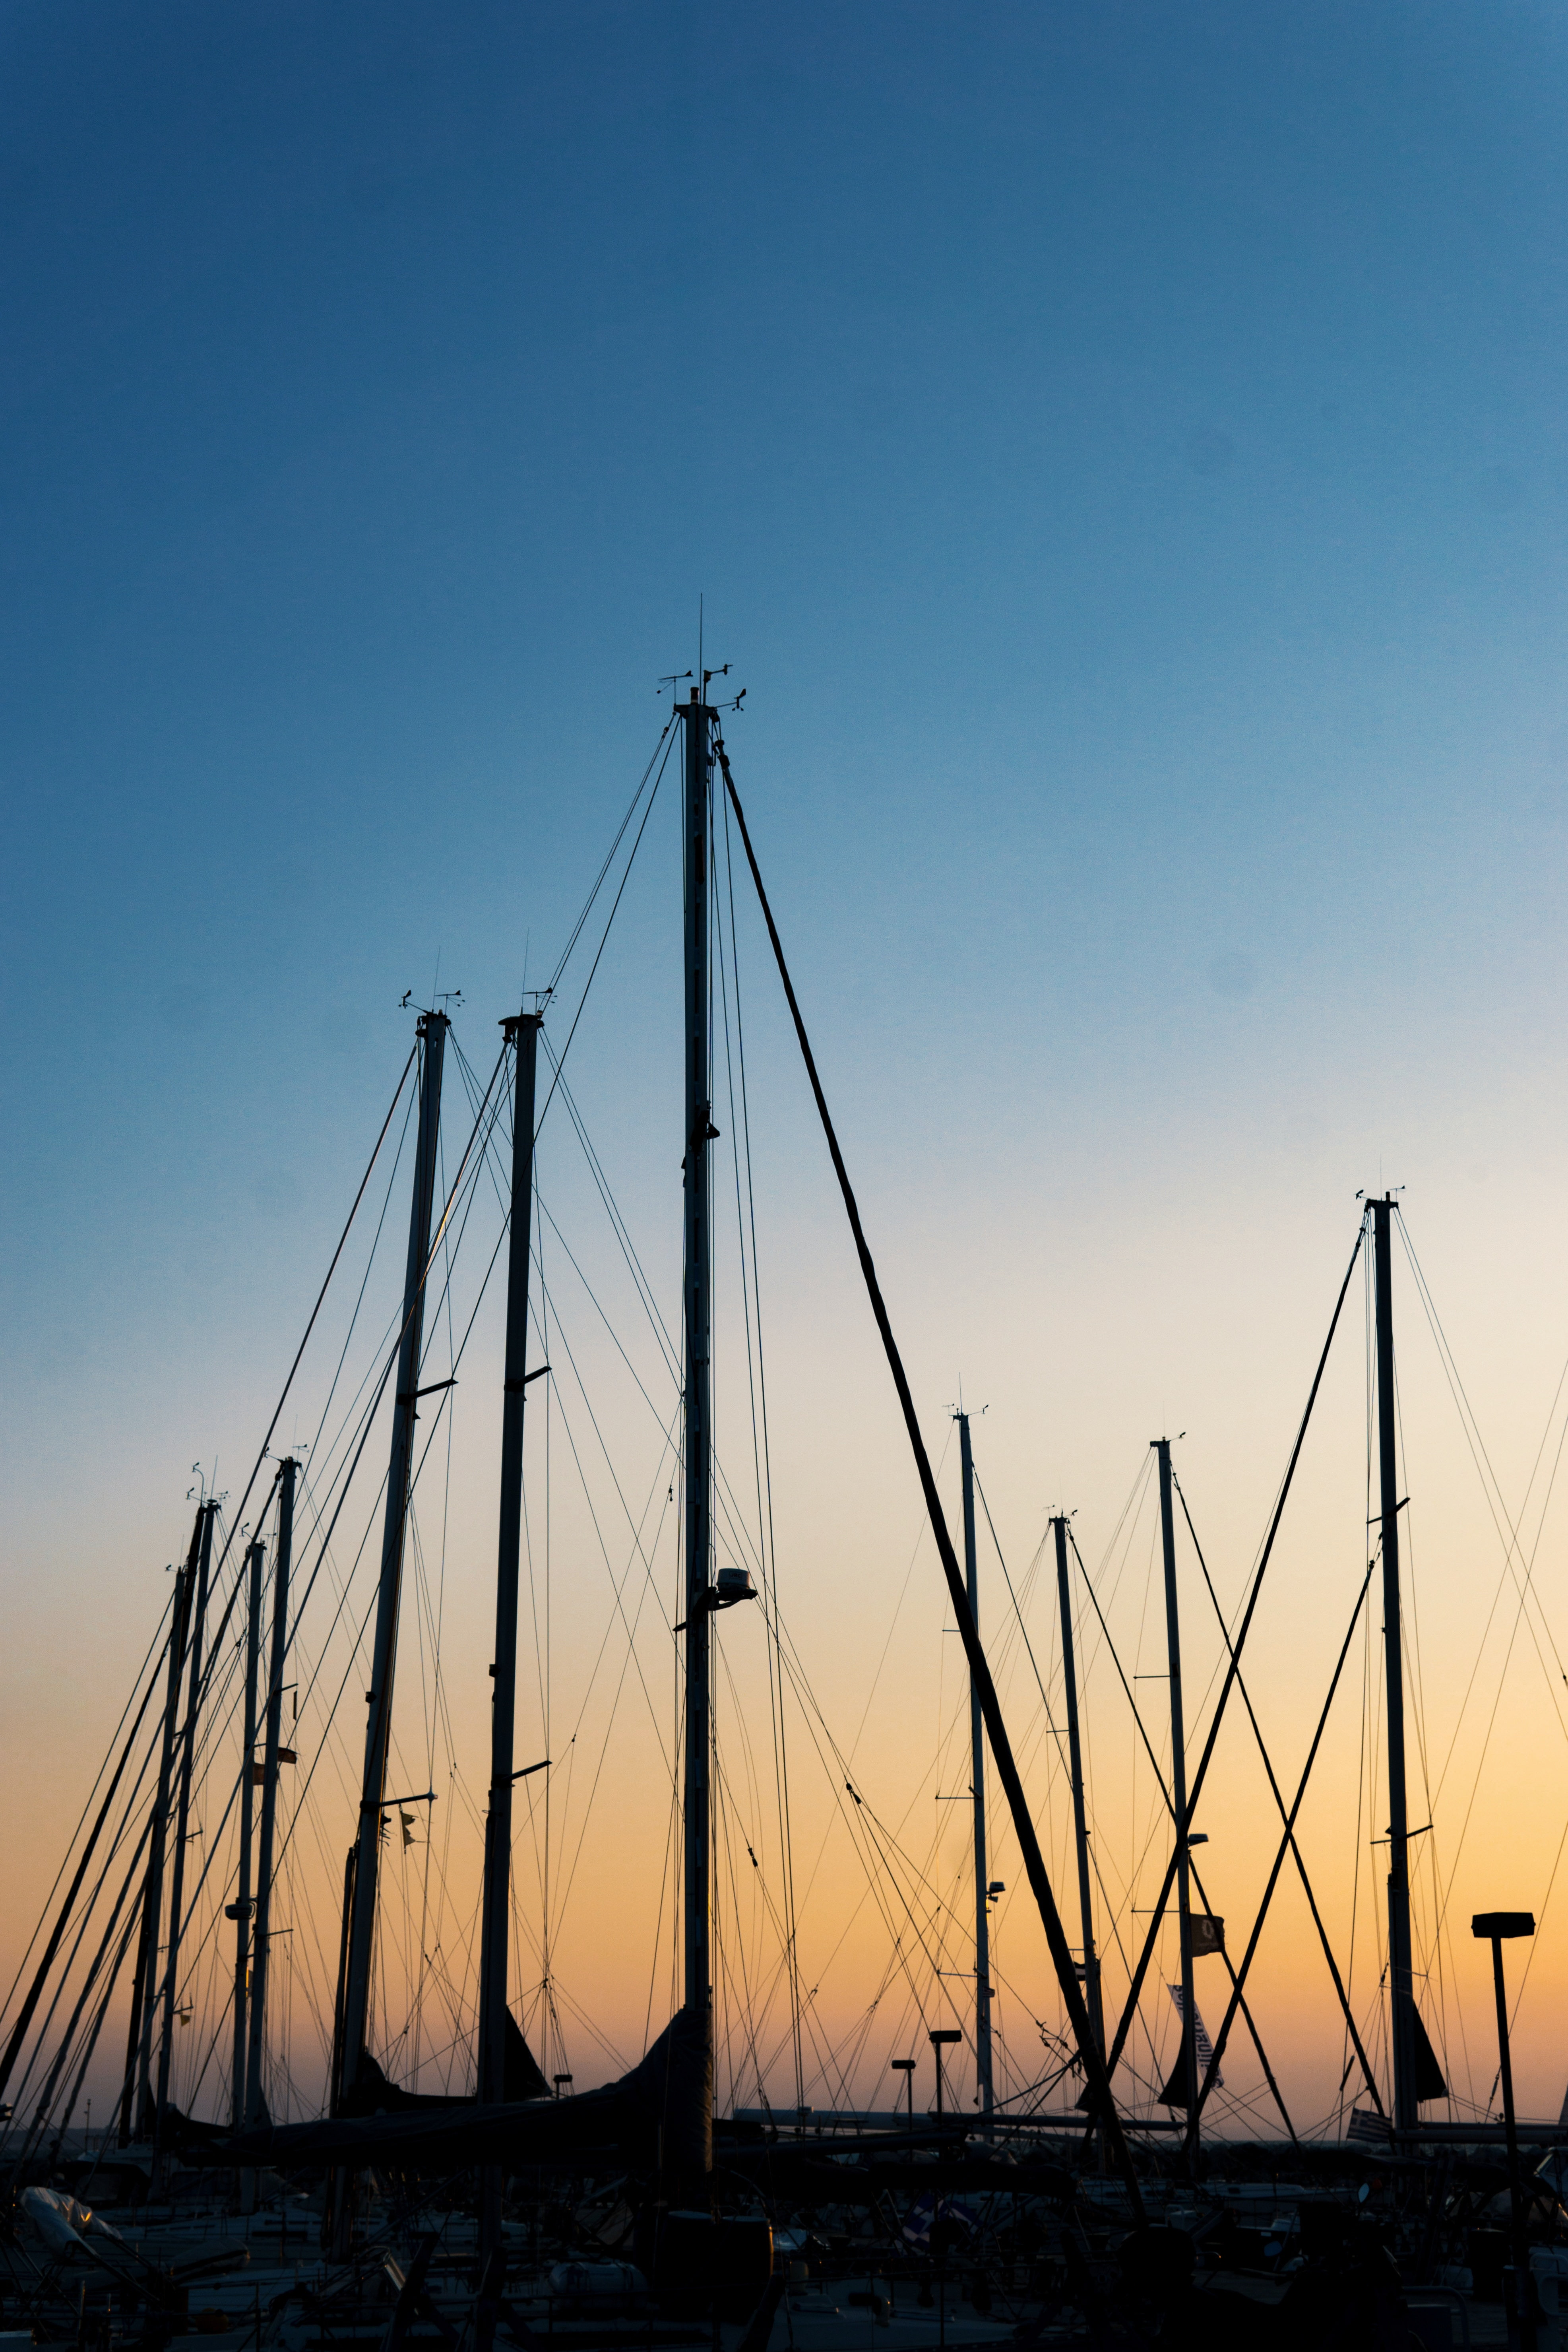 73594 download wallpaper Dark, Port, Ships, Masts, Mast, Dusk, Twilight screensavers and pictures for free